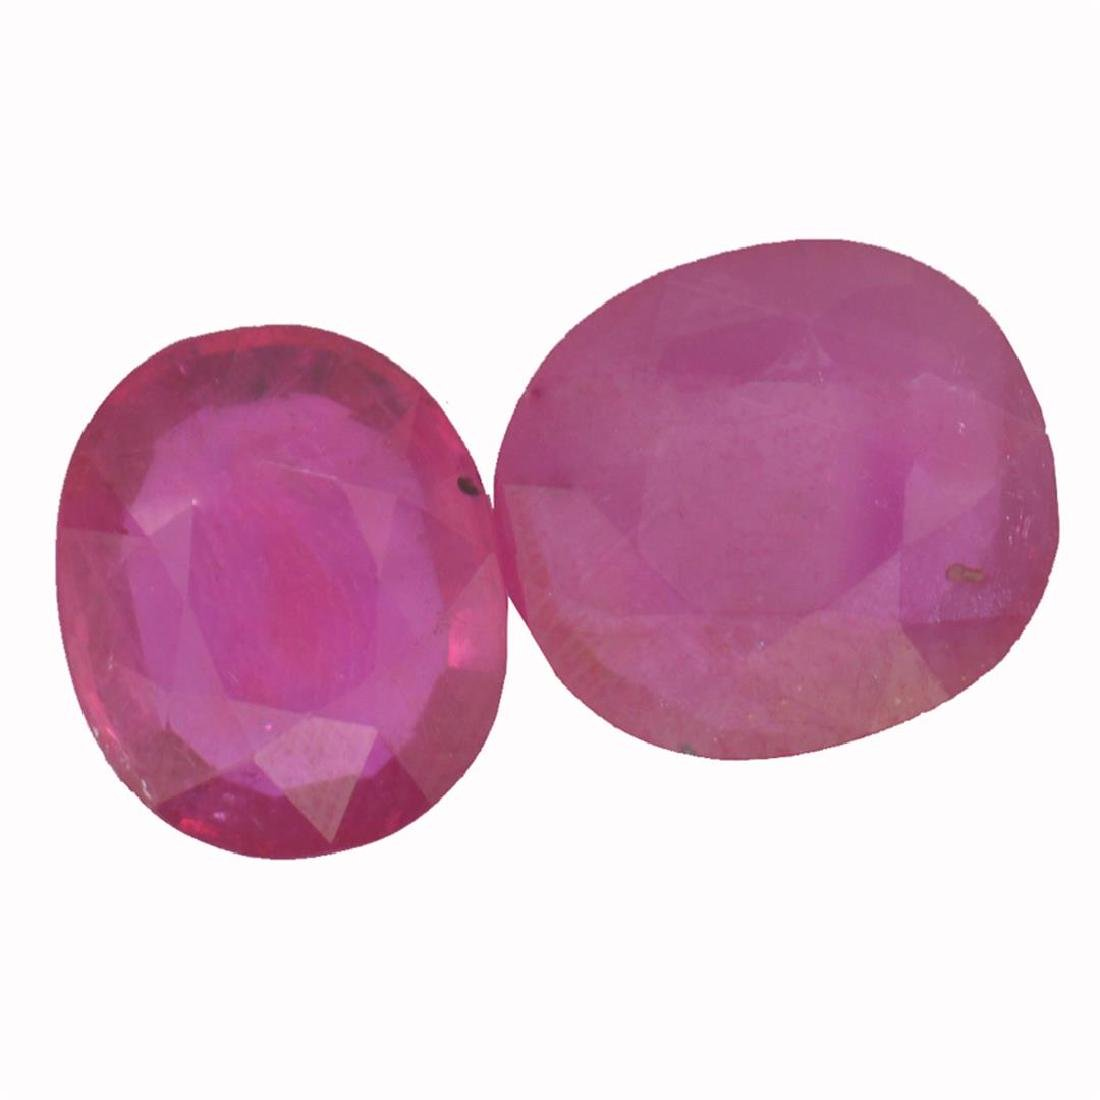 11.59 ctw Oval Mixed Ruby Parcel